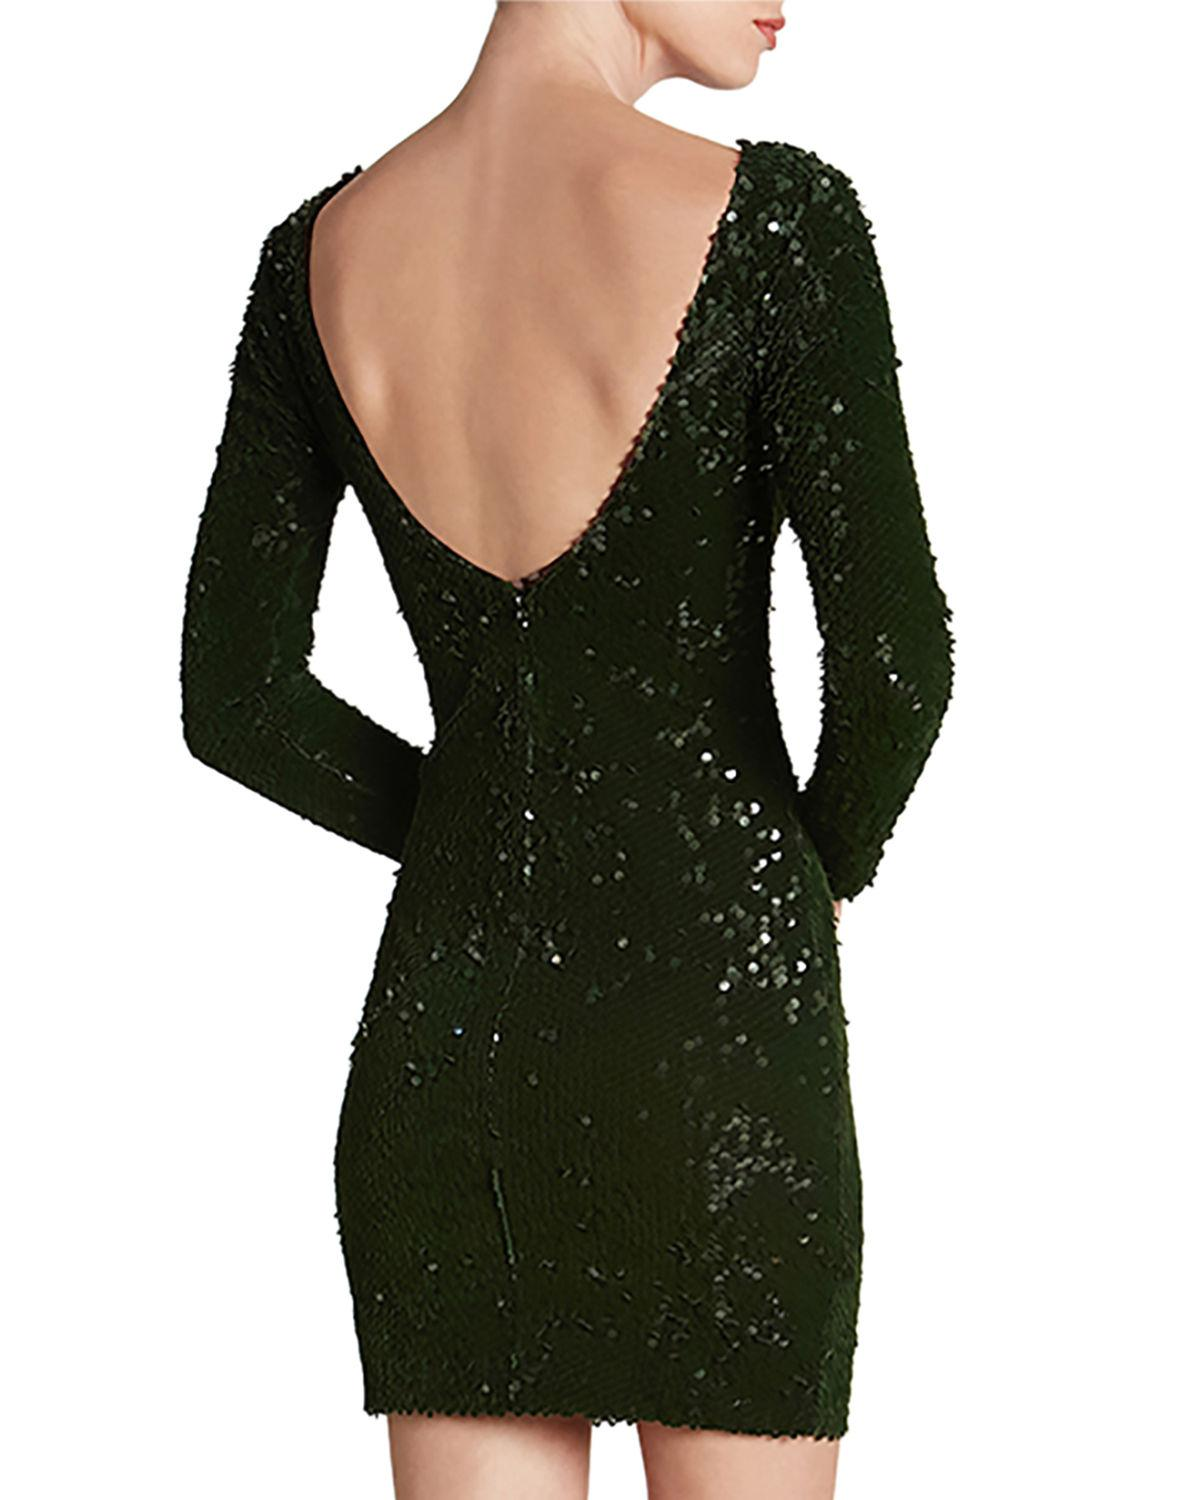 952f045d663 Lyst - Dress the Population Lola Long-sleeve Scoop-back Sequin Mini  Cocktail Dress in Green